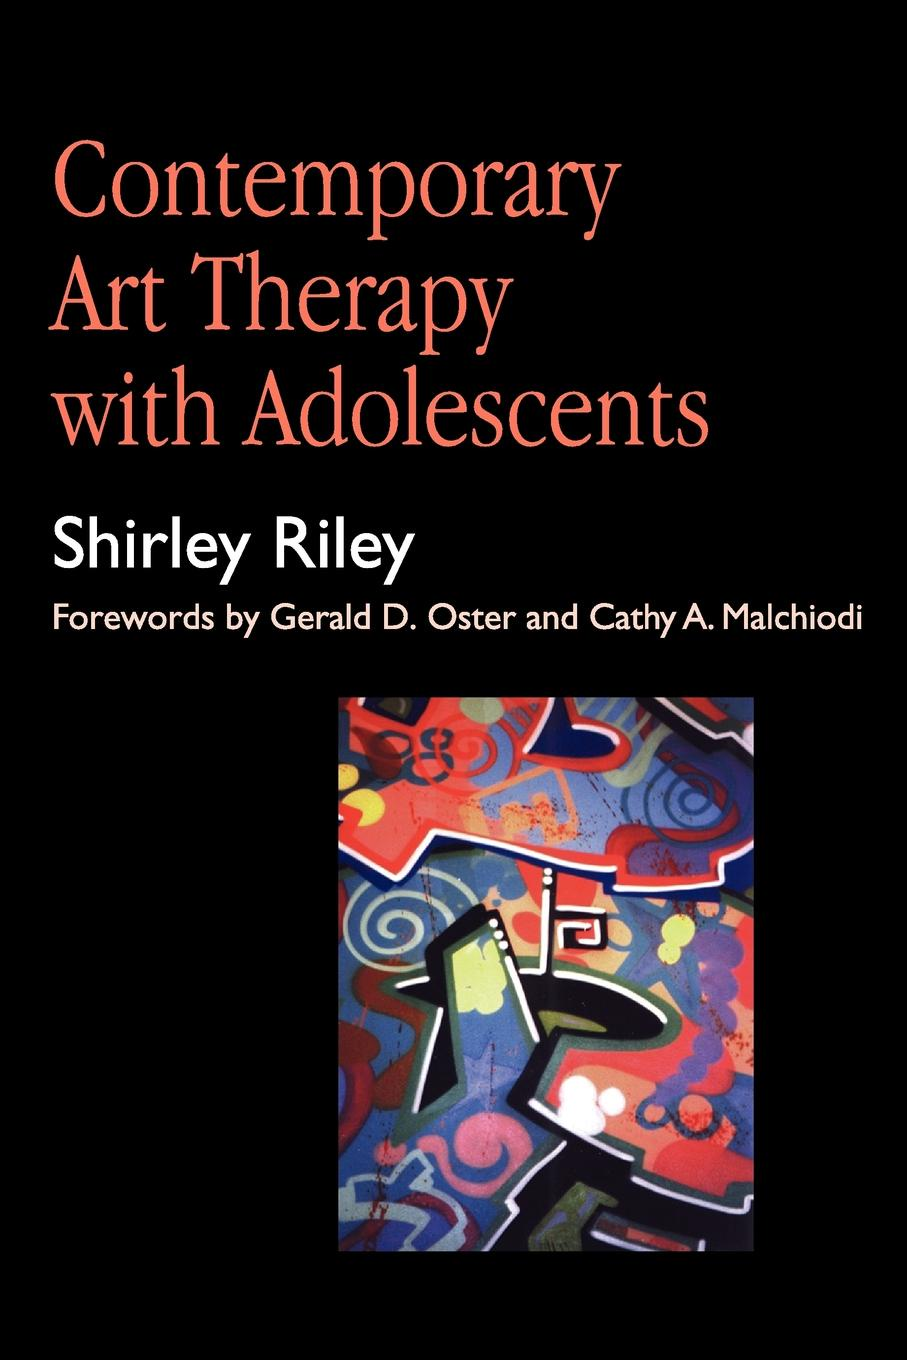 лучшая цена Shirley Riley Contemporary Art Therapy with Adolescents